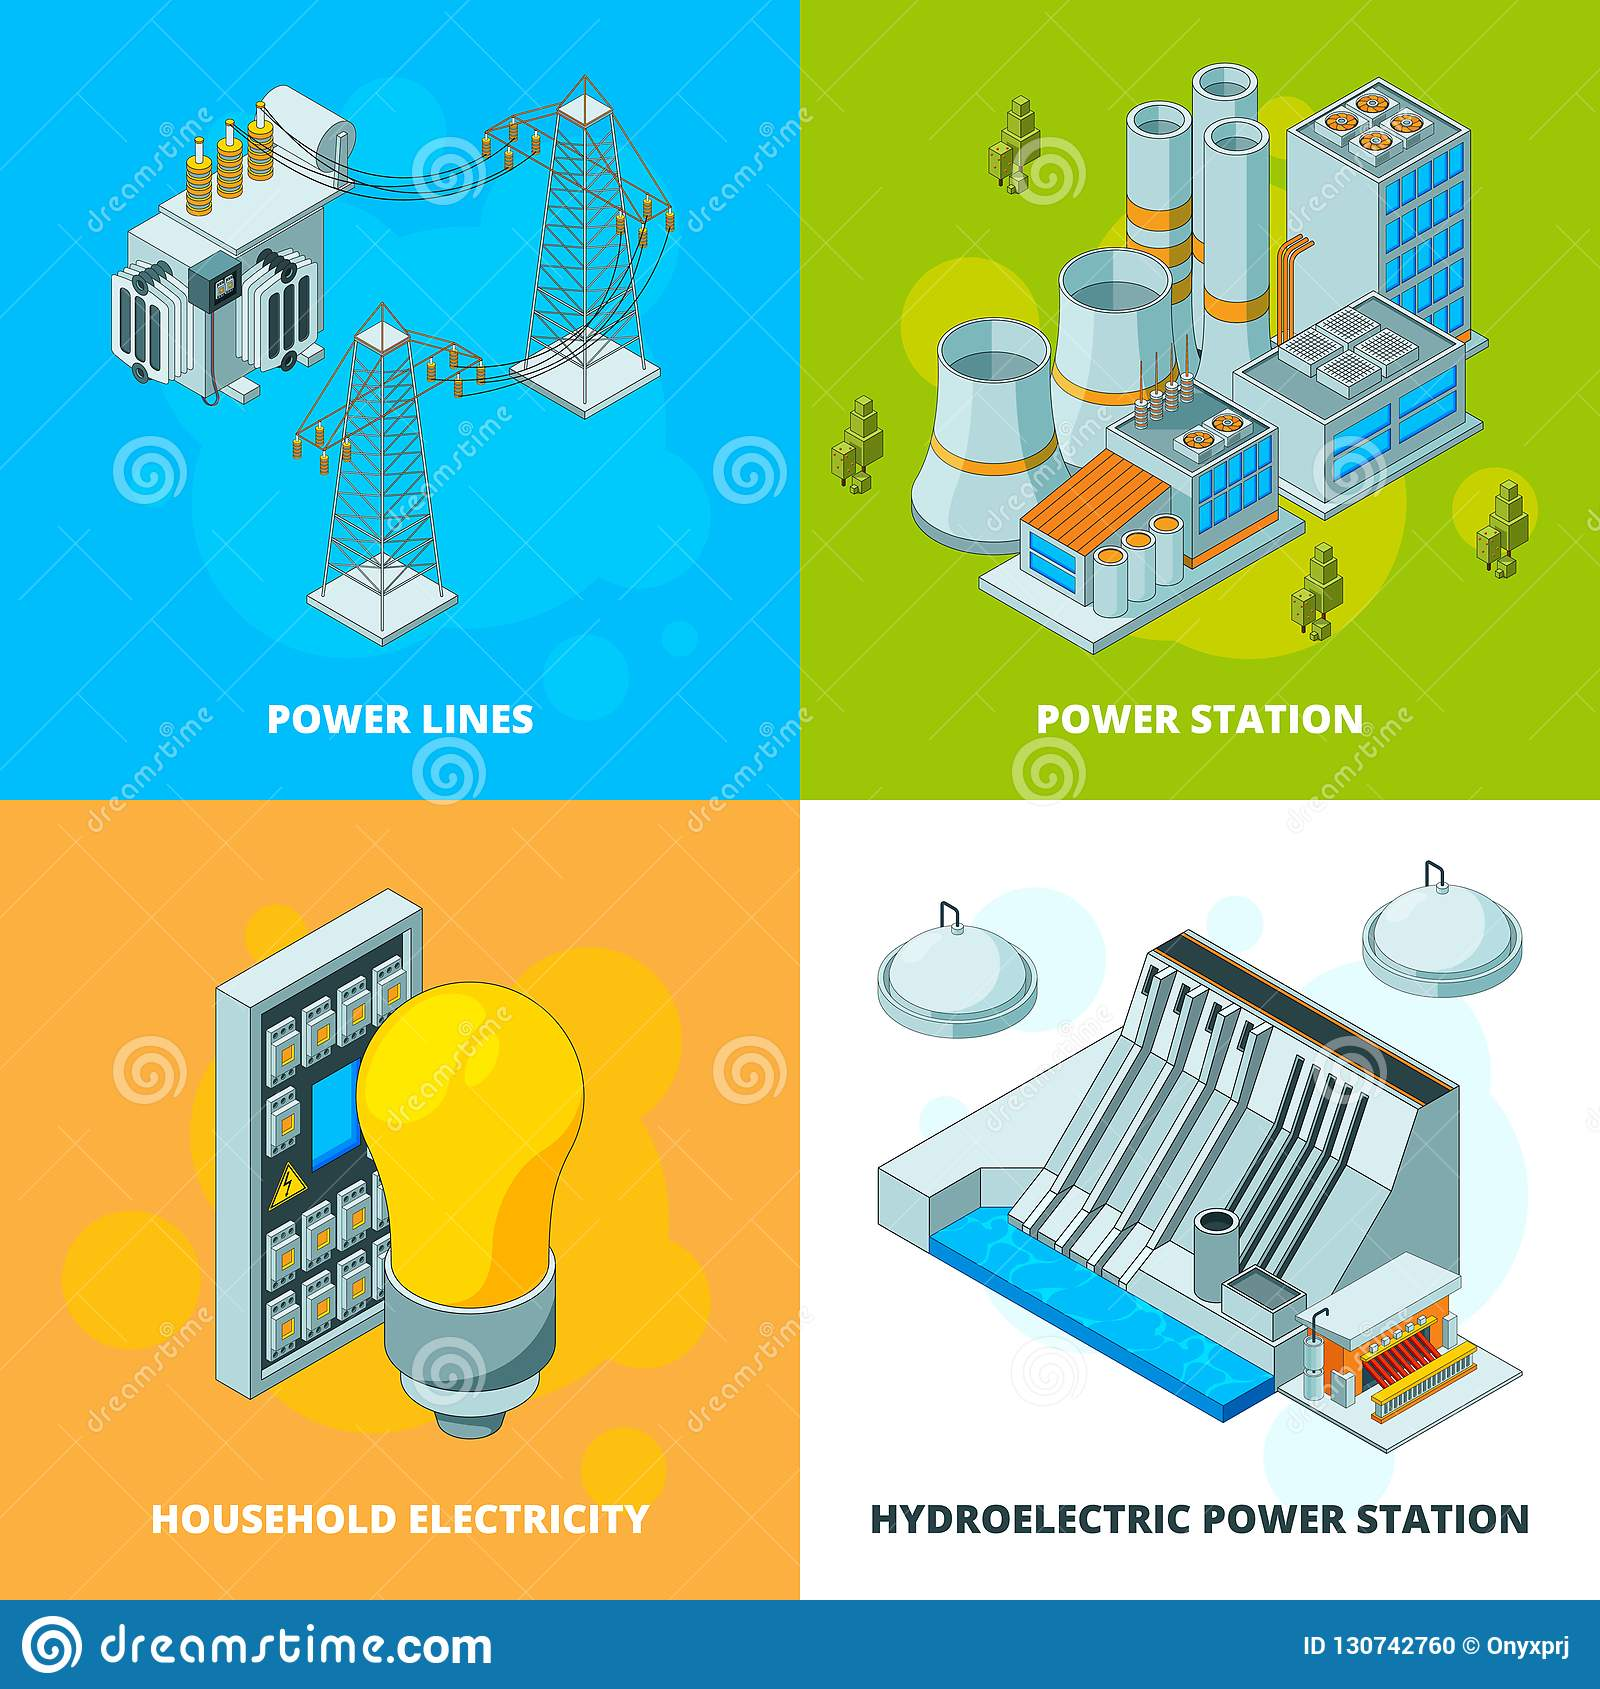 Energy power stations. Electrical symbols generator high voltage transmission vector isometric concept pictures